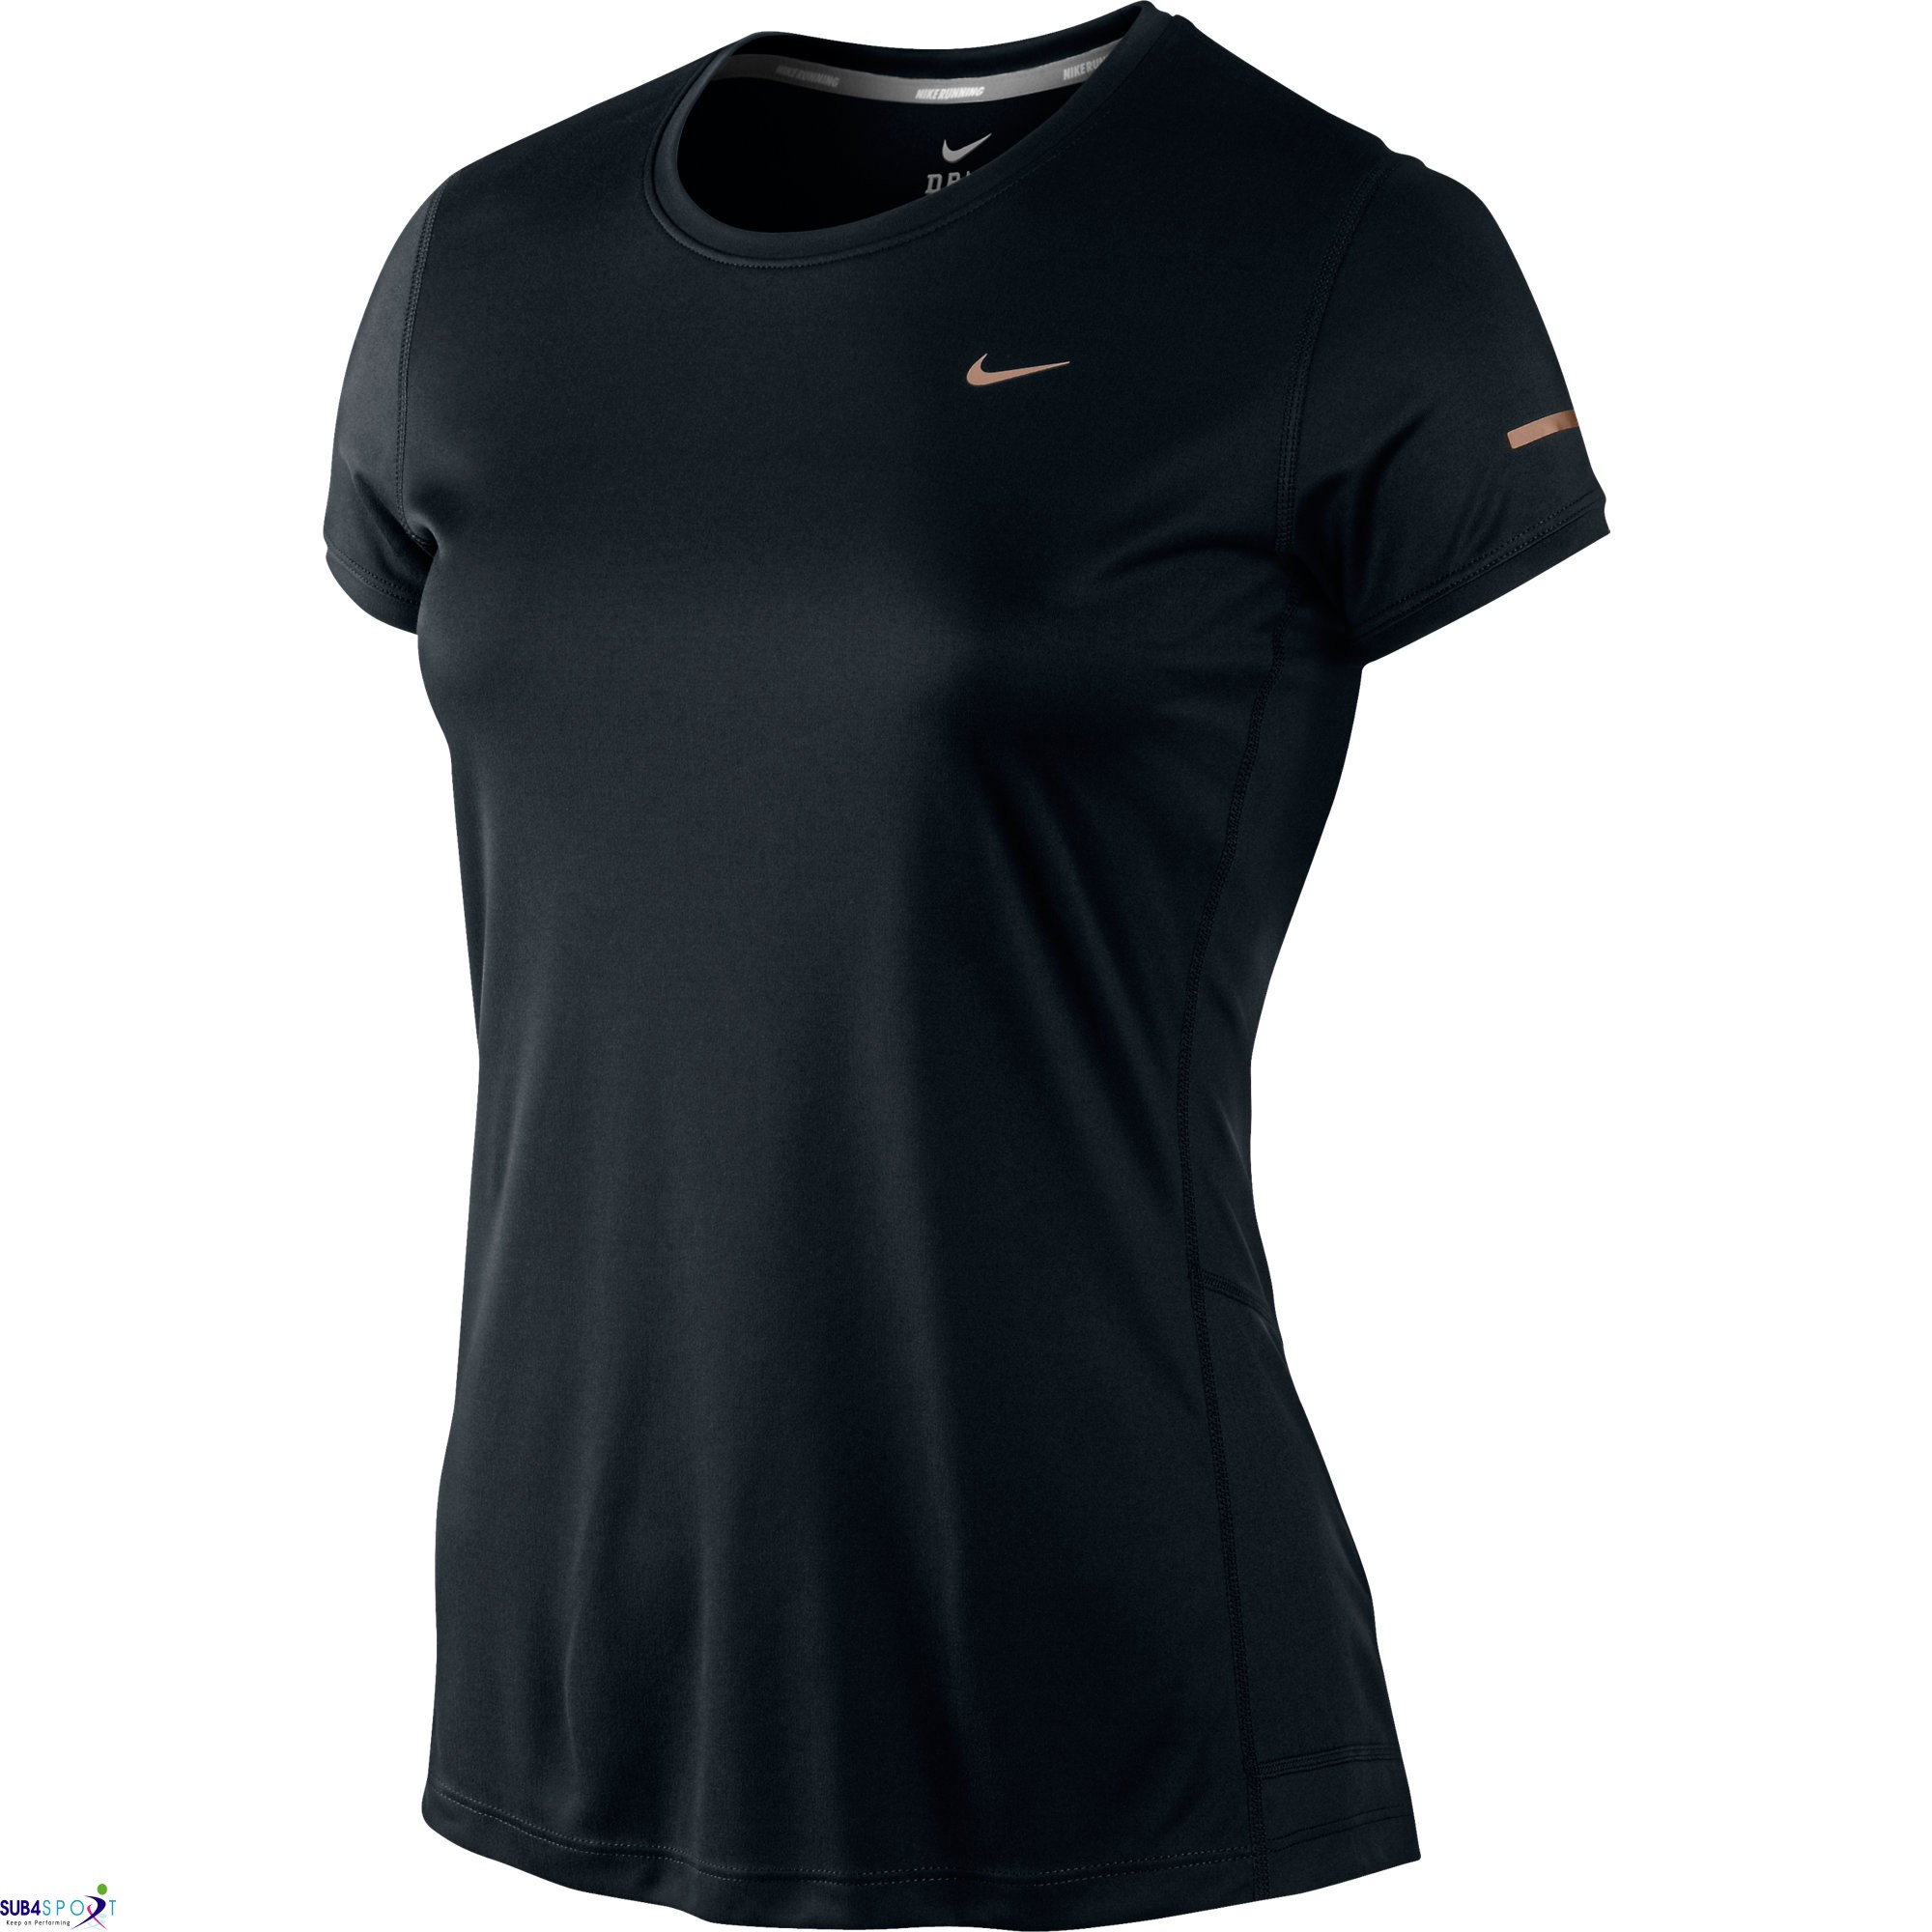 8a0c95f0 Running Tee's Archives - John Buckley Sports